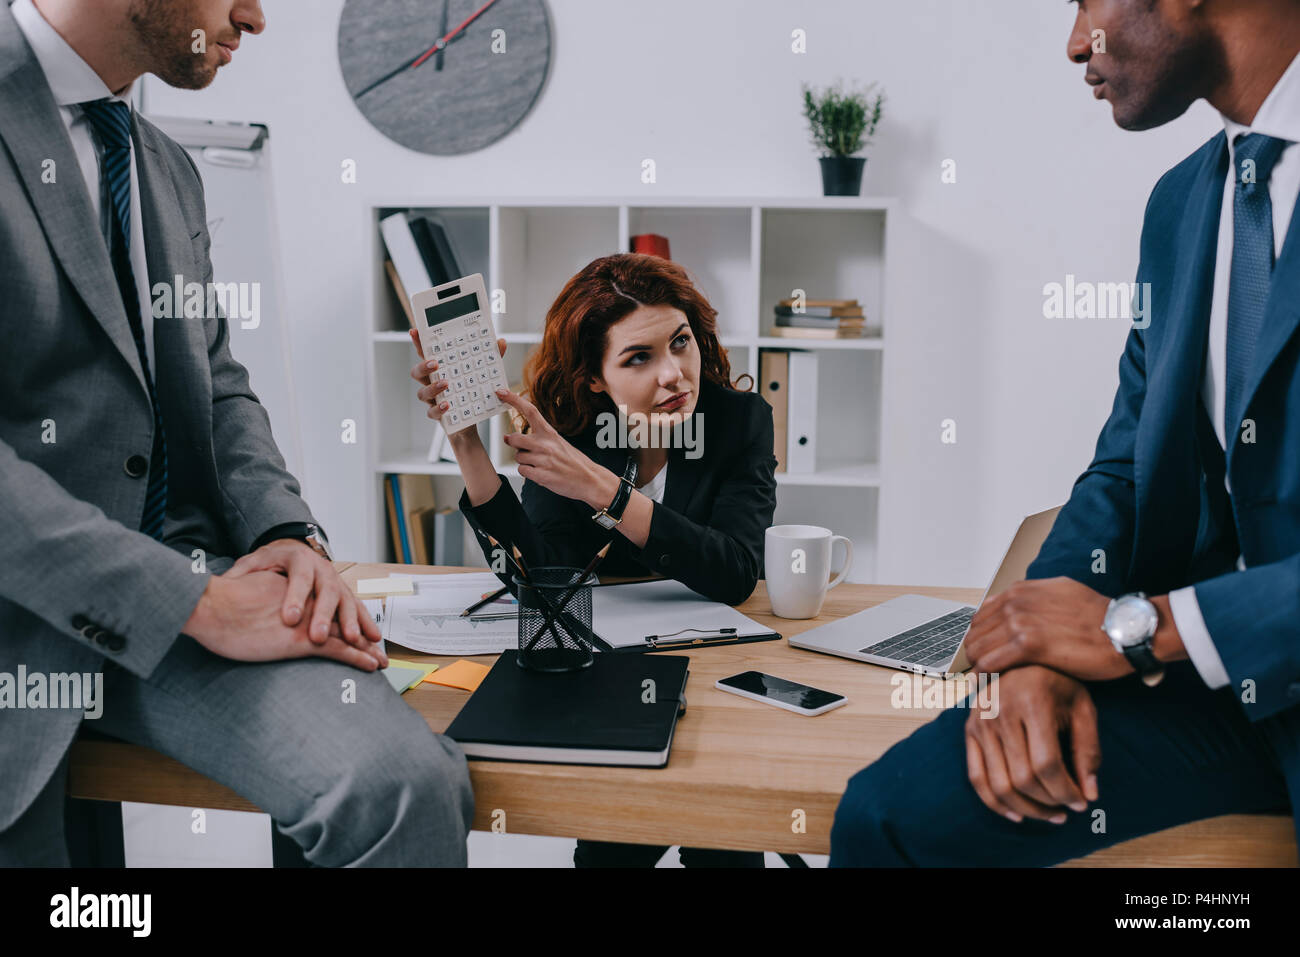 Investment adviser showing calculation to businessmen - Stock Image